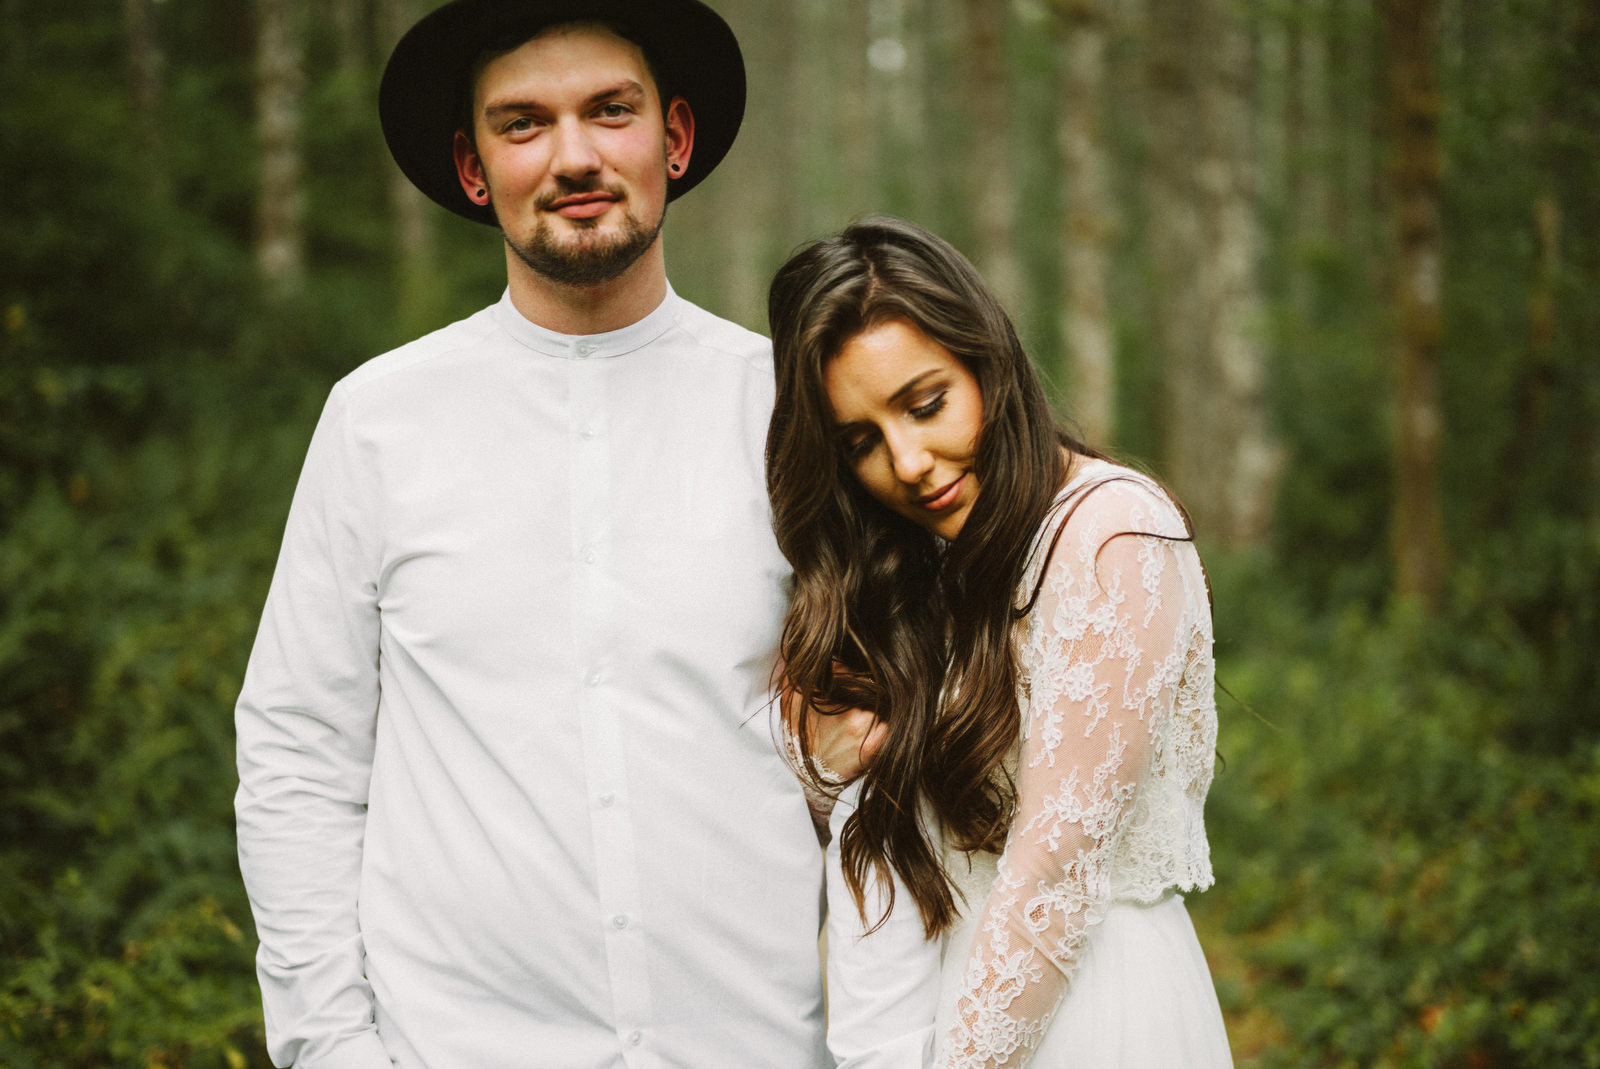 athena-and-camron-seattle-elopement-wedding-benj-haisch-rattlesnake-lake-christian-couple-goals11